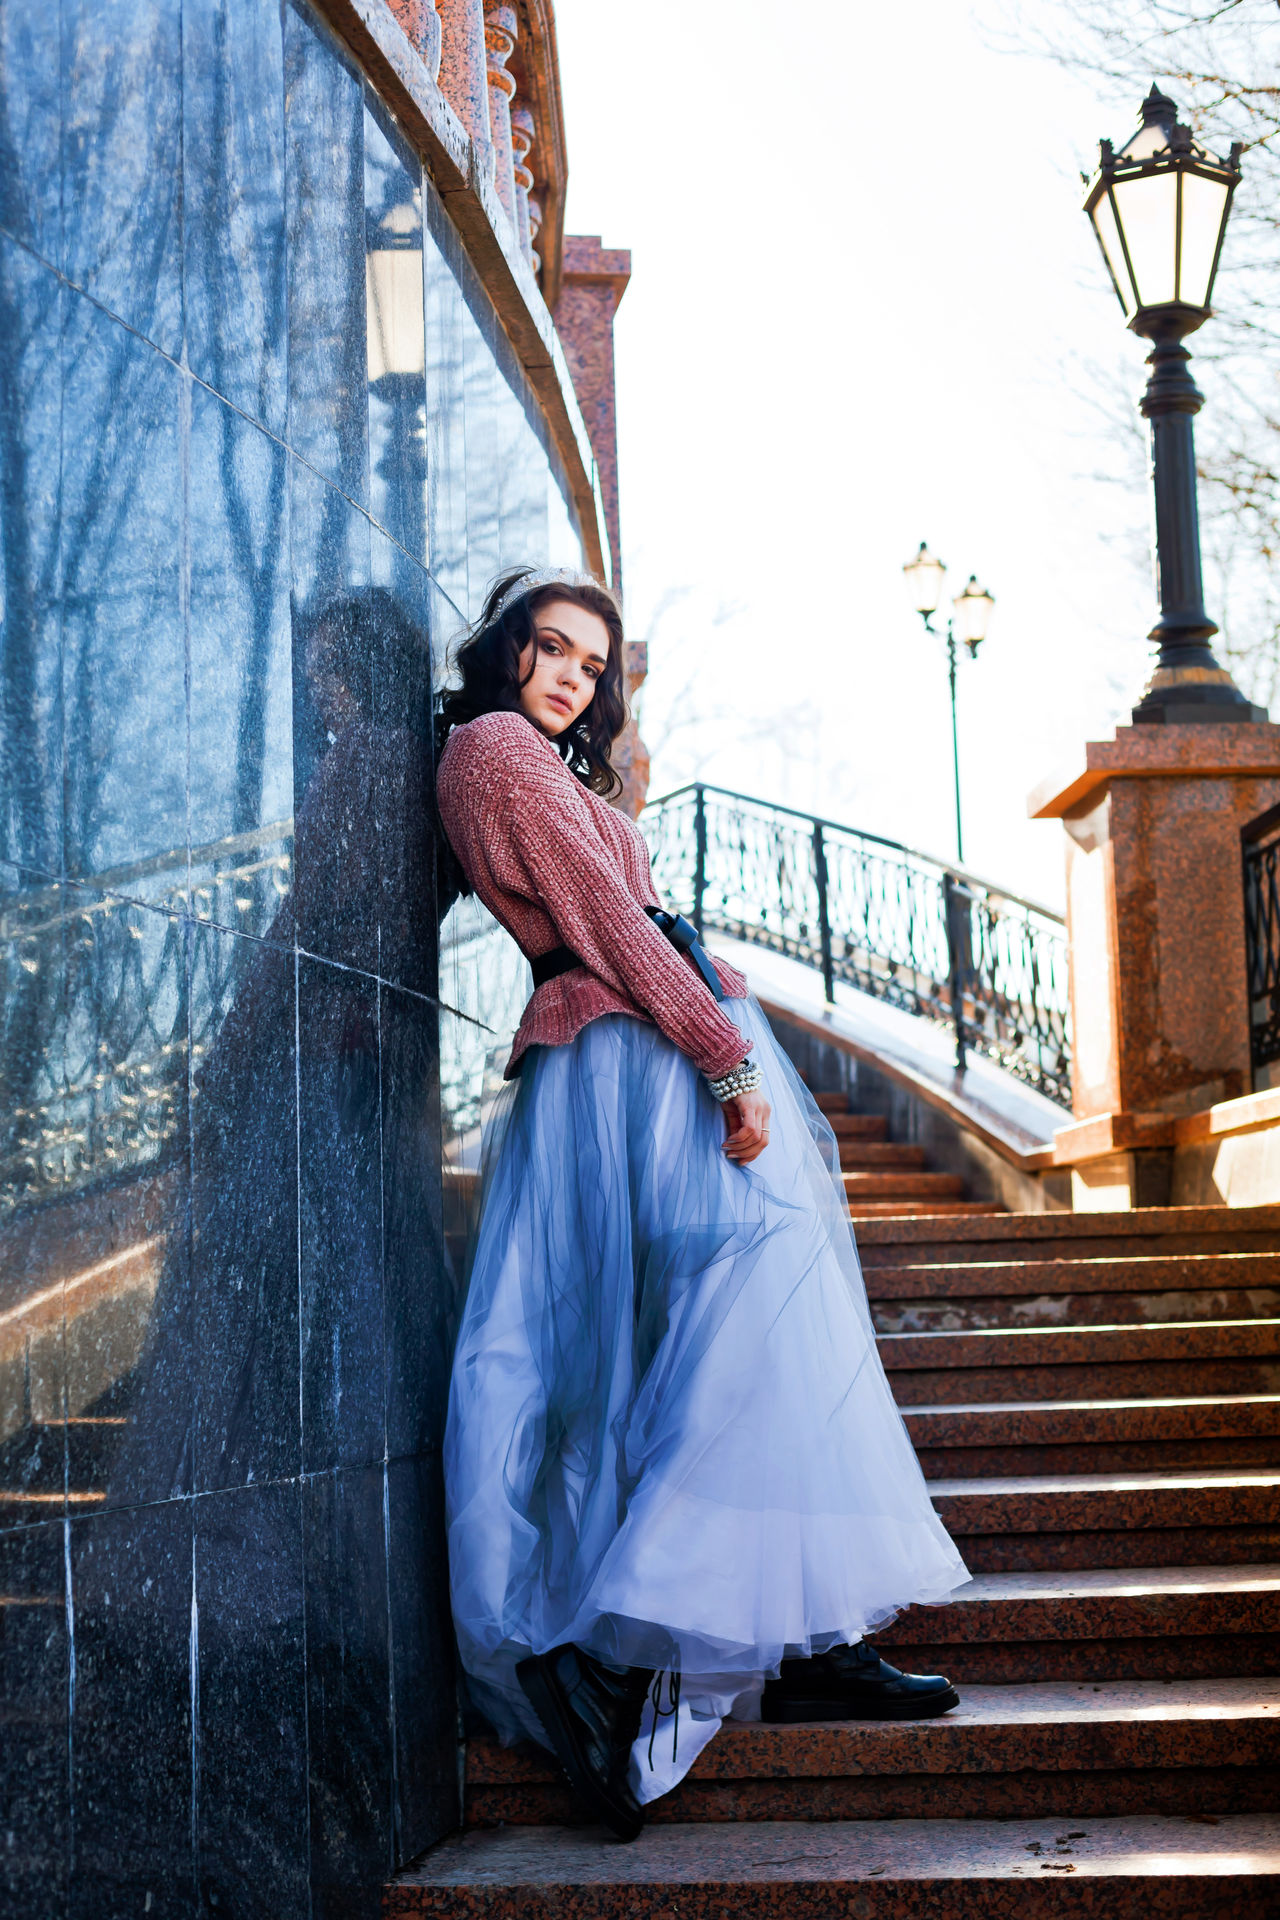 Architecture Beautiful People Beauty Day Elégance Fashion Fashion Photography Full Length Millennial Pink Music One Young Woman Only Outdoor Outdoor Photography Outdoors Portrait Smiling Sunlight